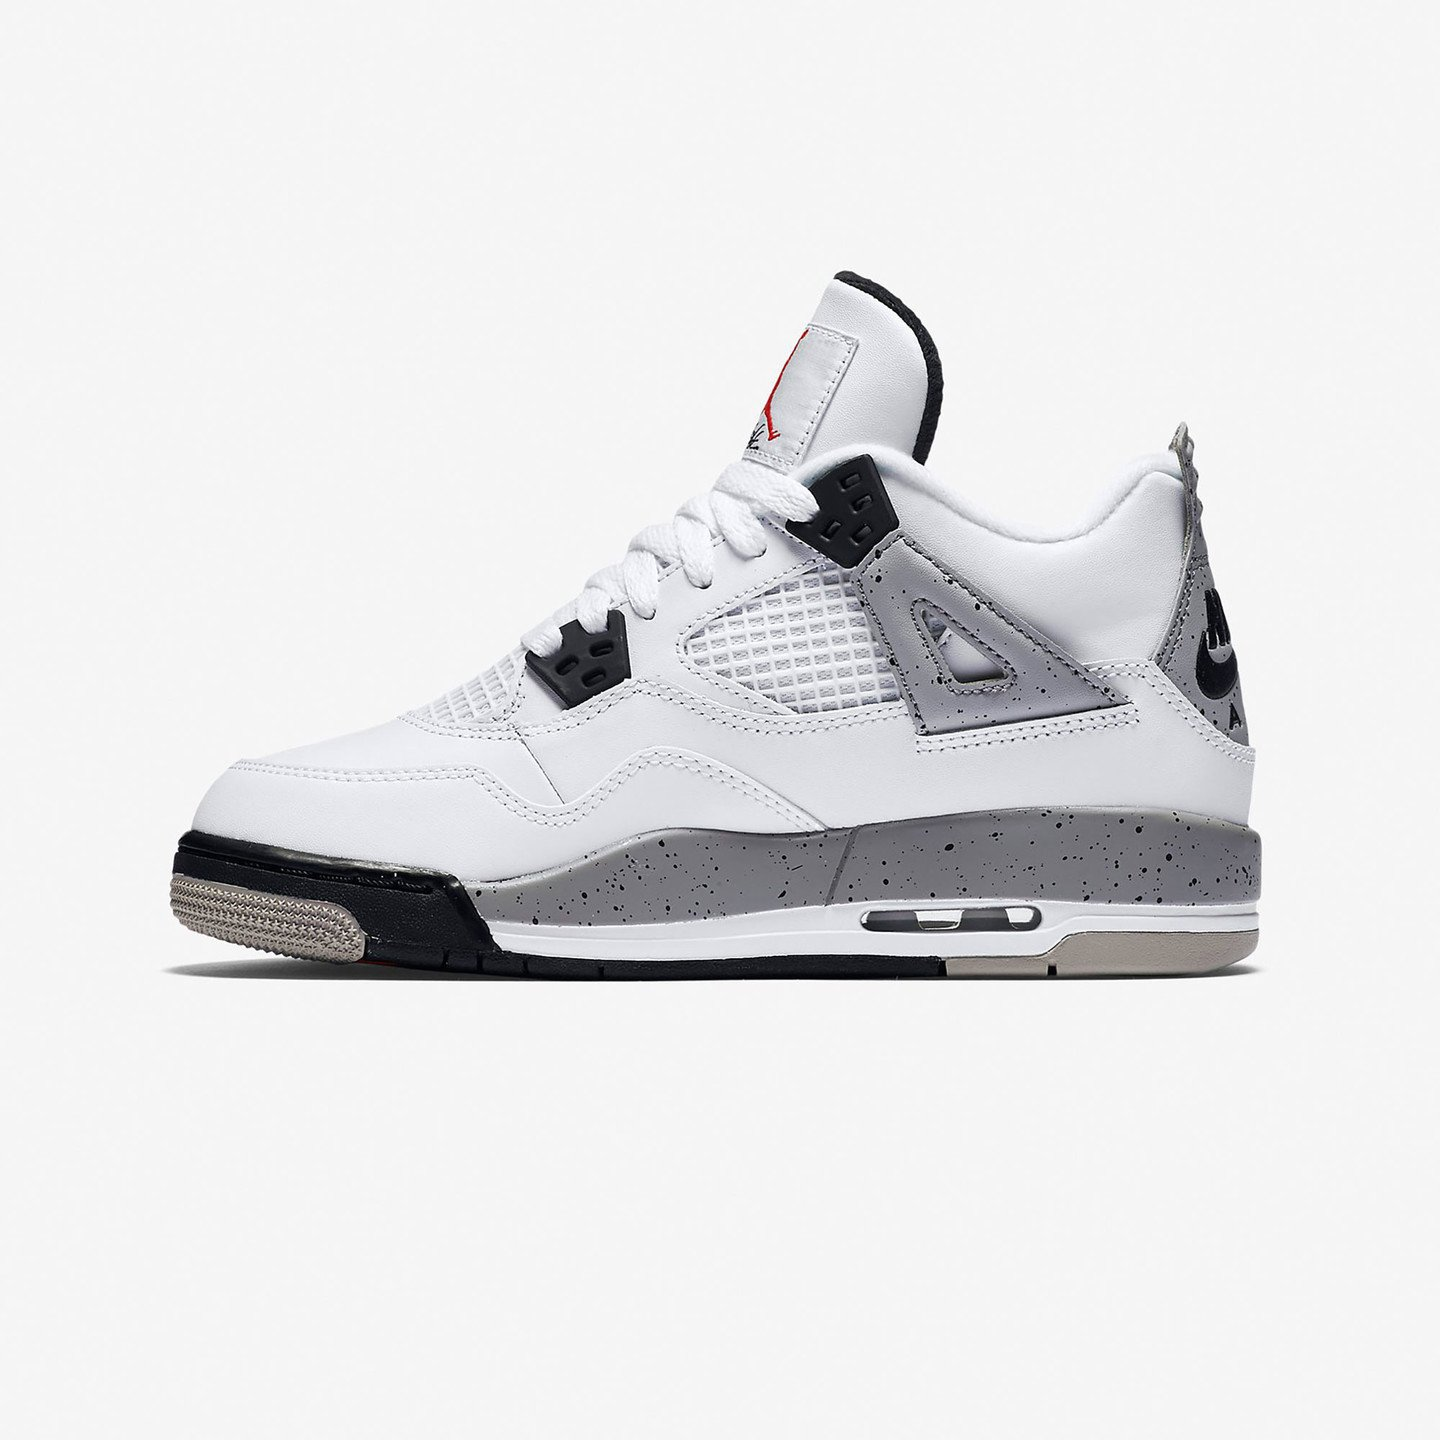 Nike Air Jordan 4 Retro GS Cement White / Fire Red / Tech Grey / Black 836016-192-38.5